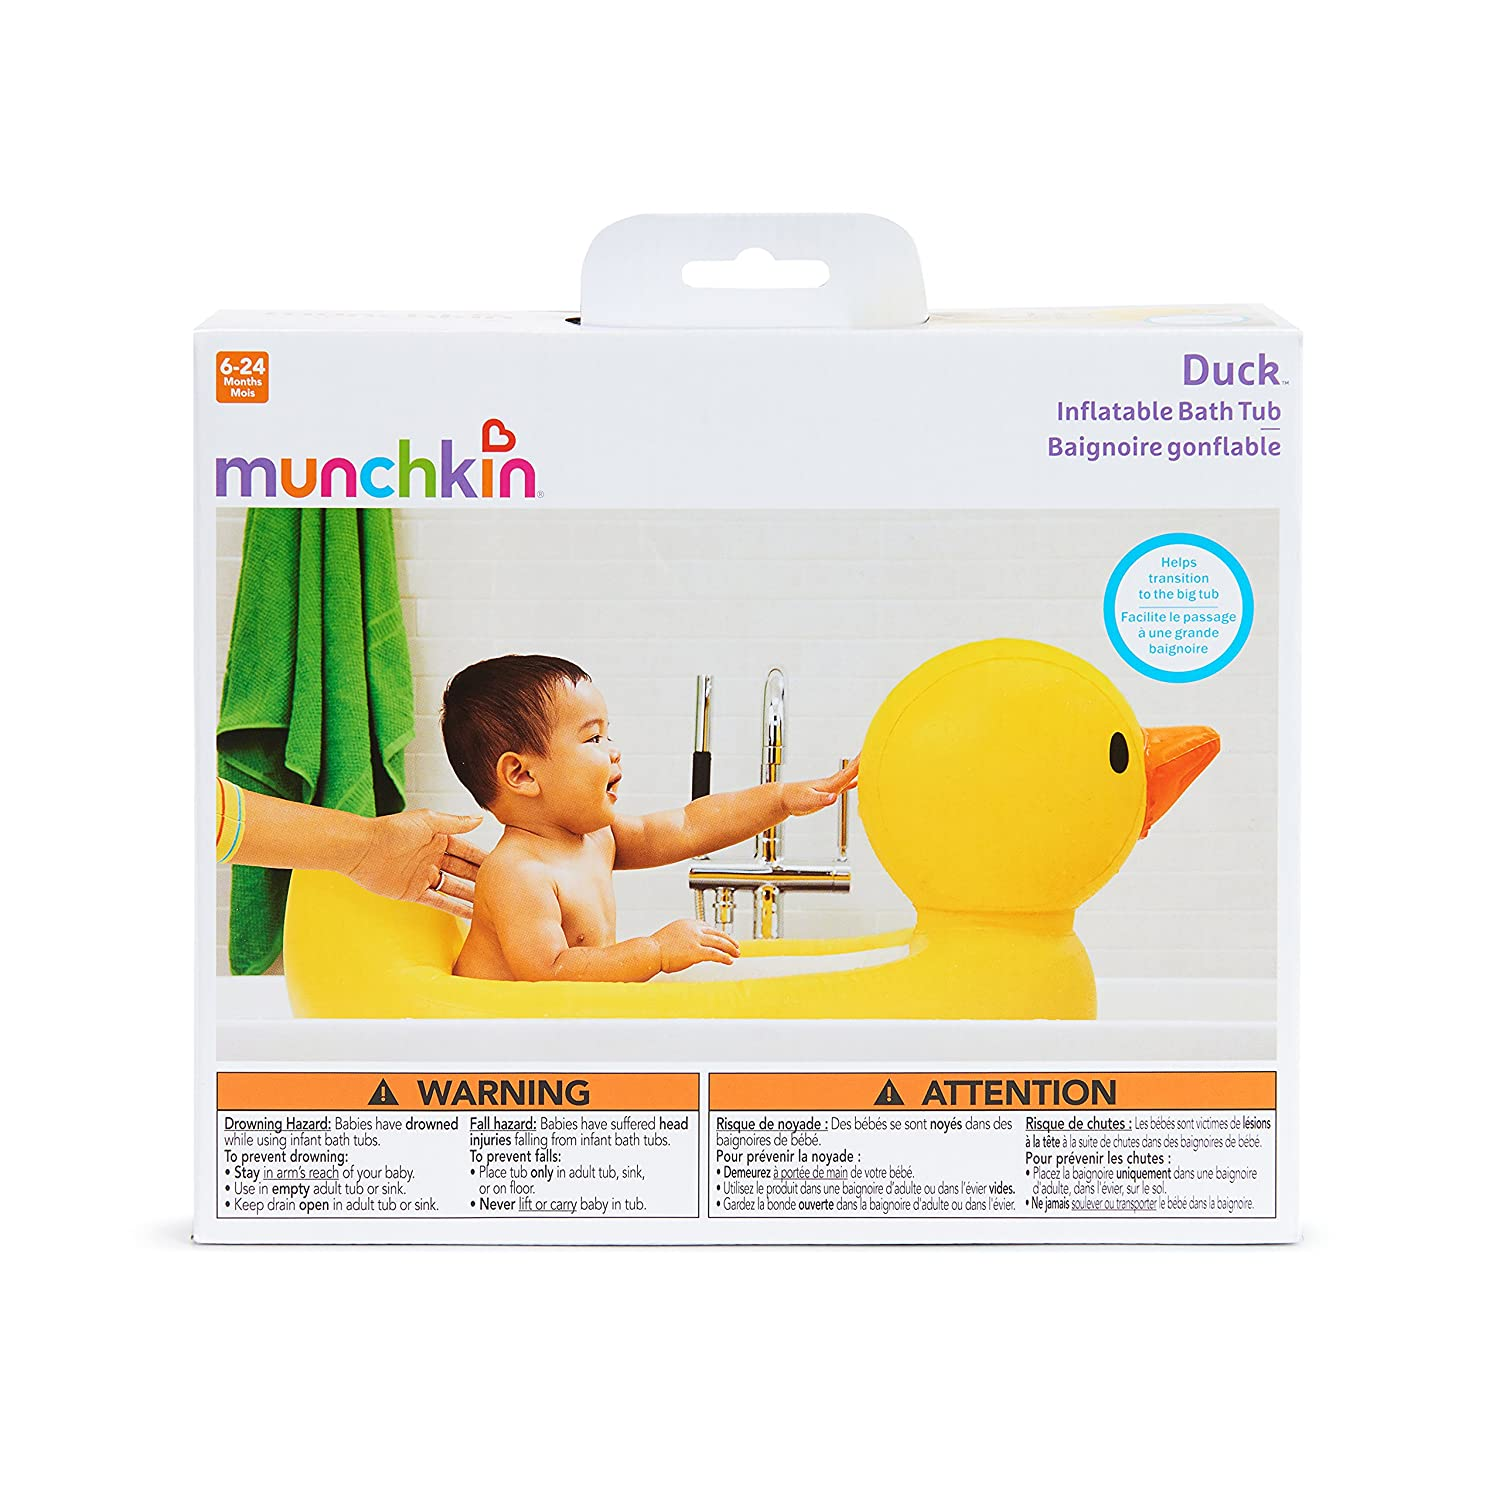 Munchkin White Hot Inflatable Duck Tub : Baby Bathing Seats And Tubs : Baby